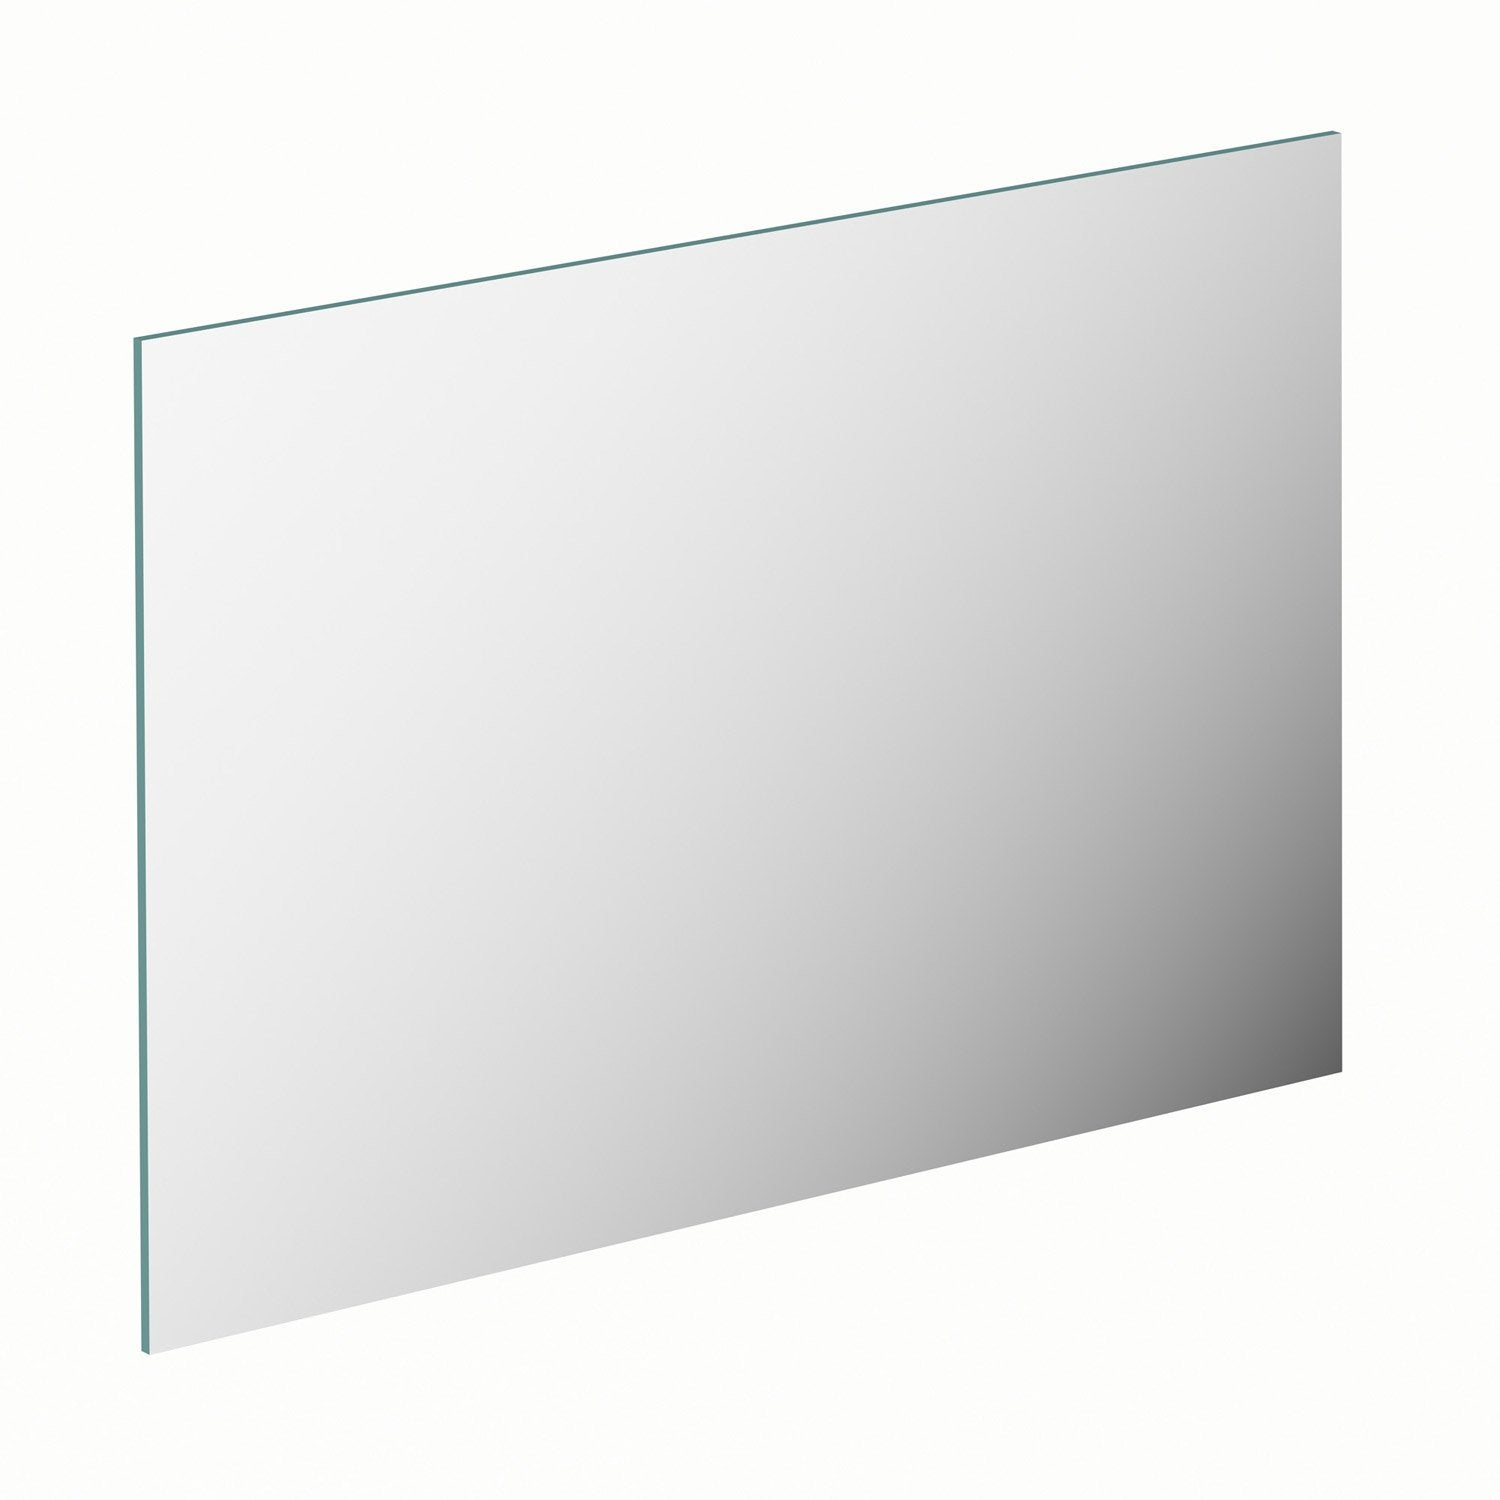 Panneau glossy miroir spaceo leroy merlin - Leroy merlin mirroir ...